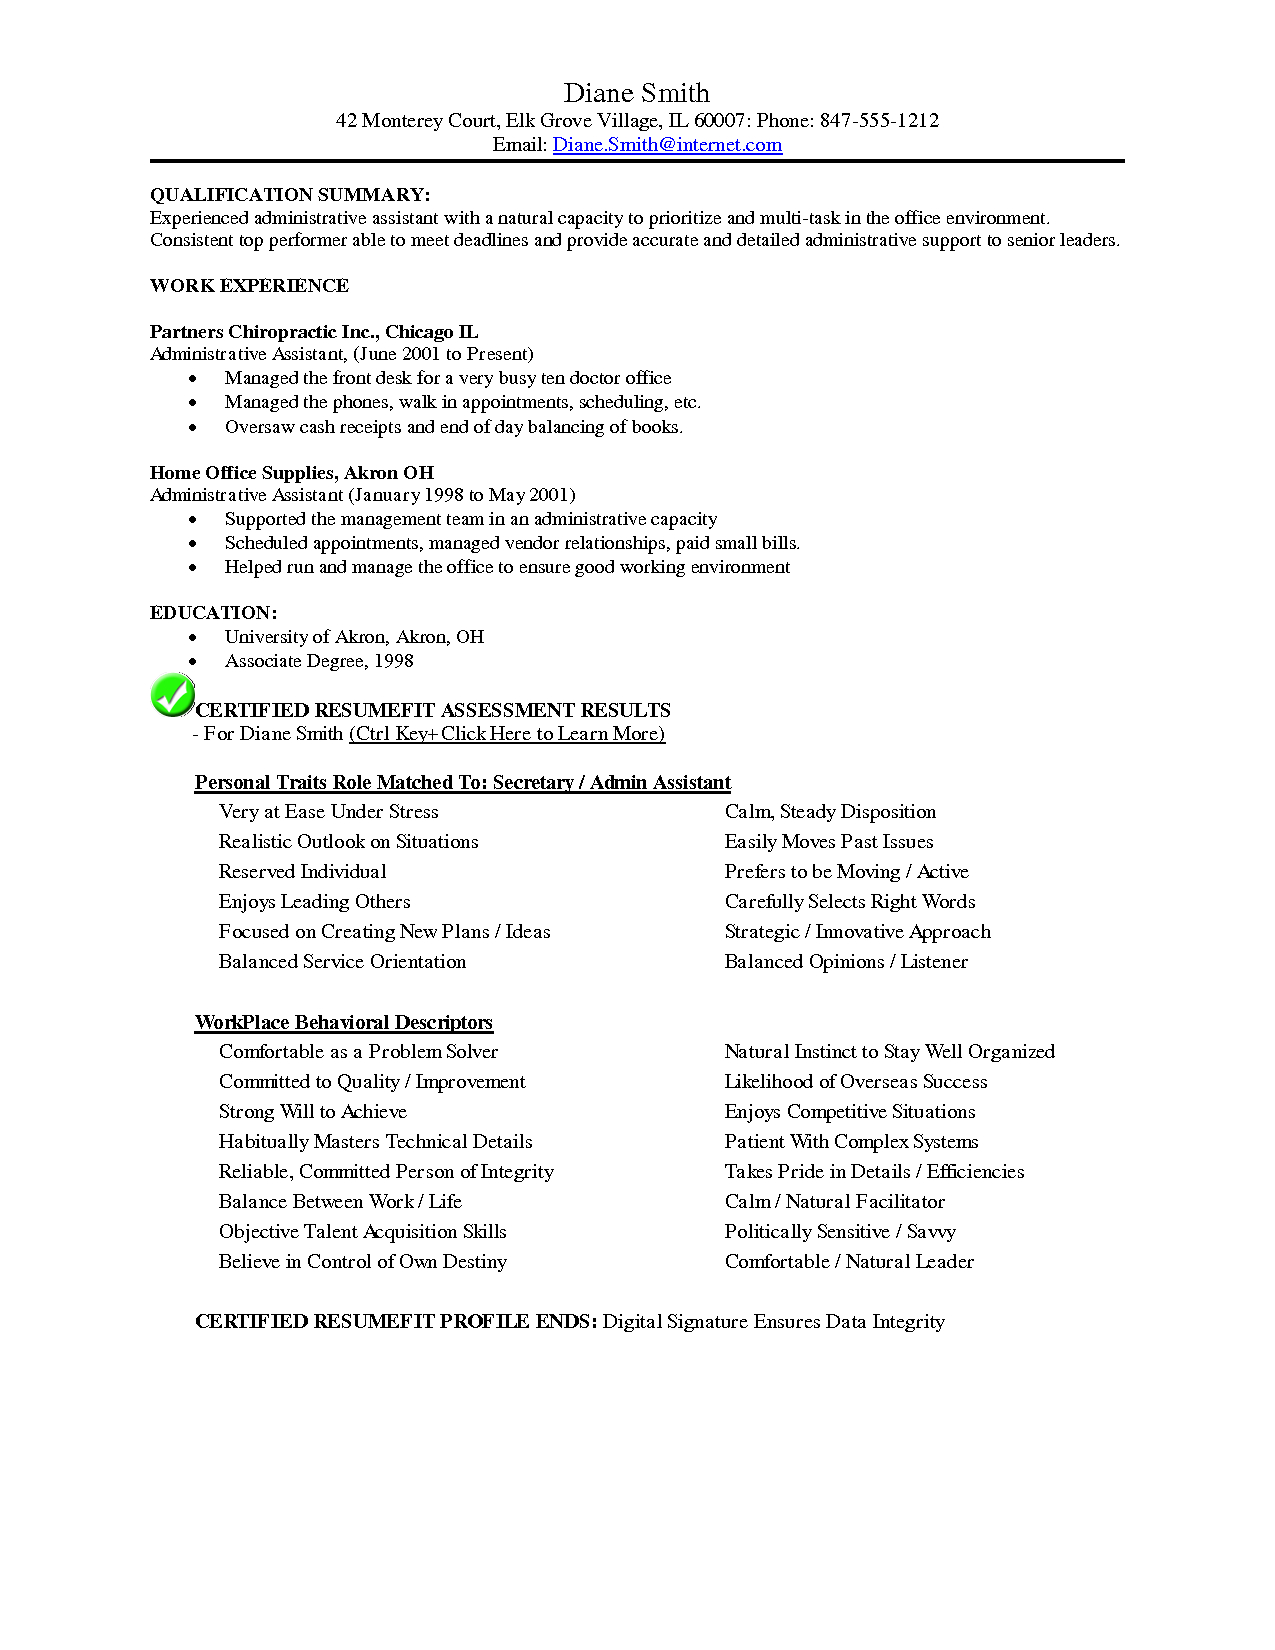 Medical Office Manager Resume Example - Chiropractic Resume Example Resumes Pinterest